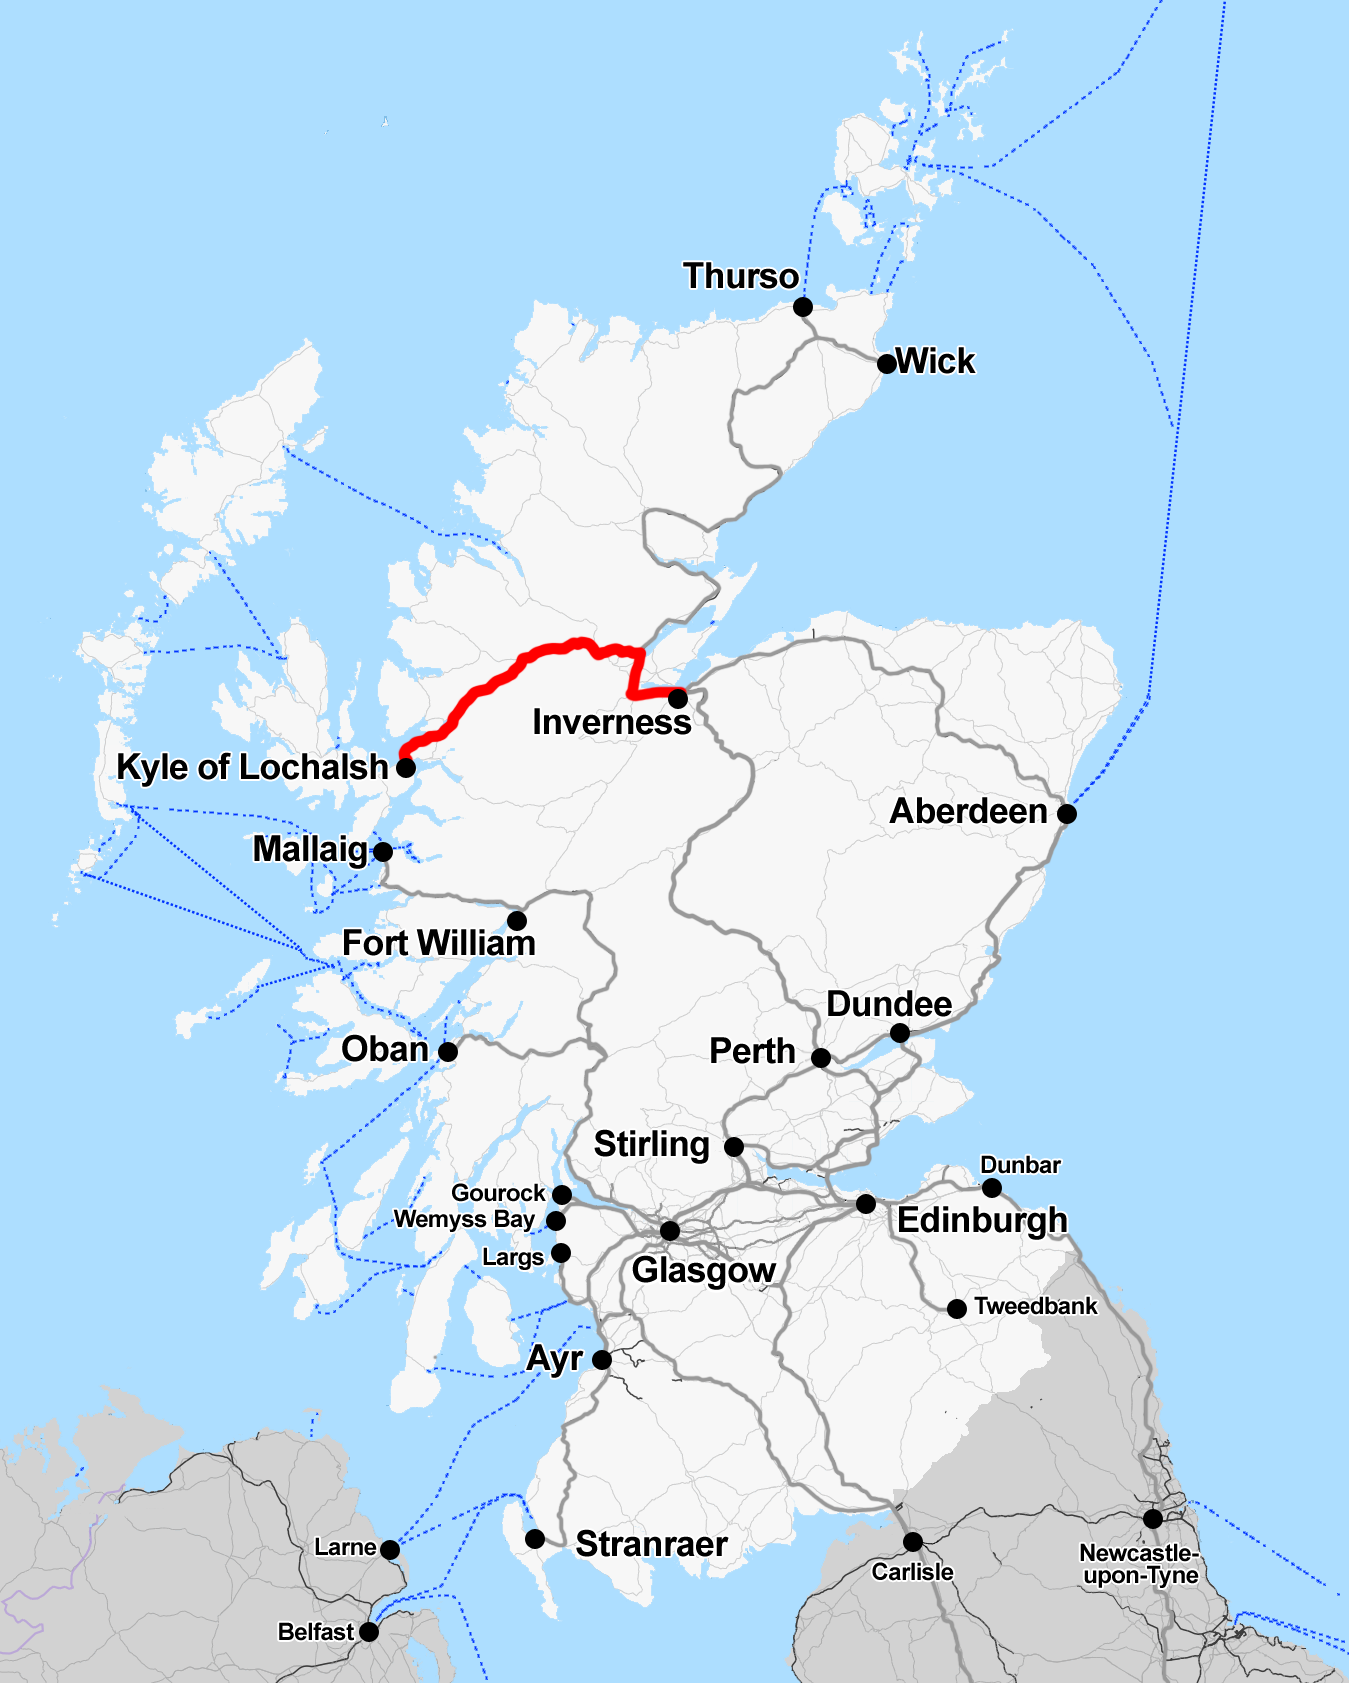 FileRail map Scotland Kyle linepng Wikimedia Commons